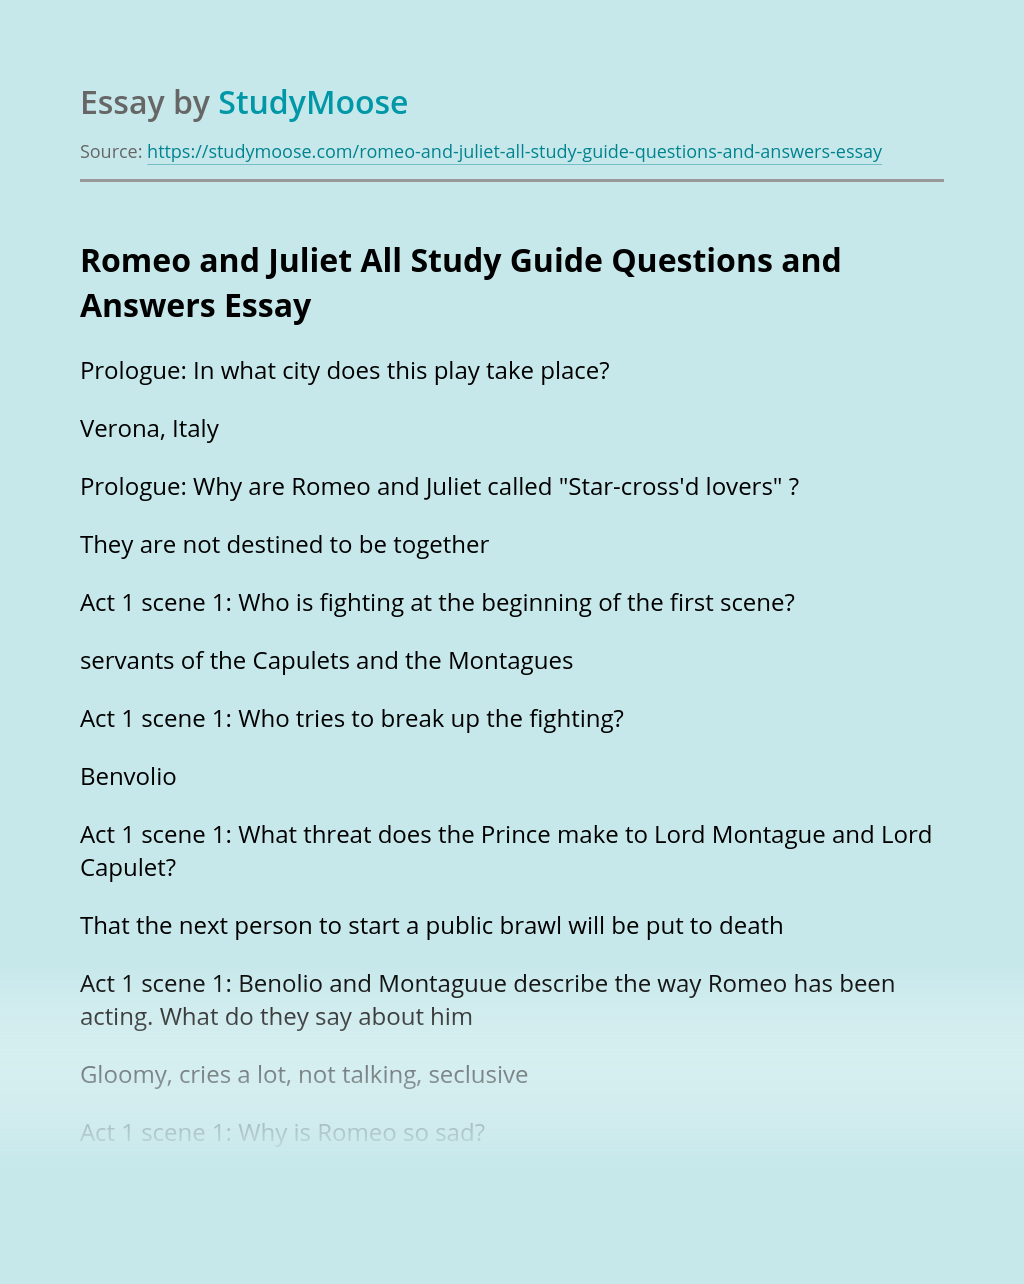 Romeo and Juliet All Study Guide Questions and Answers